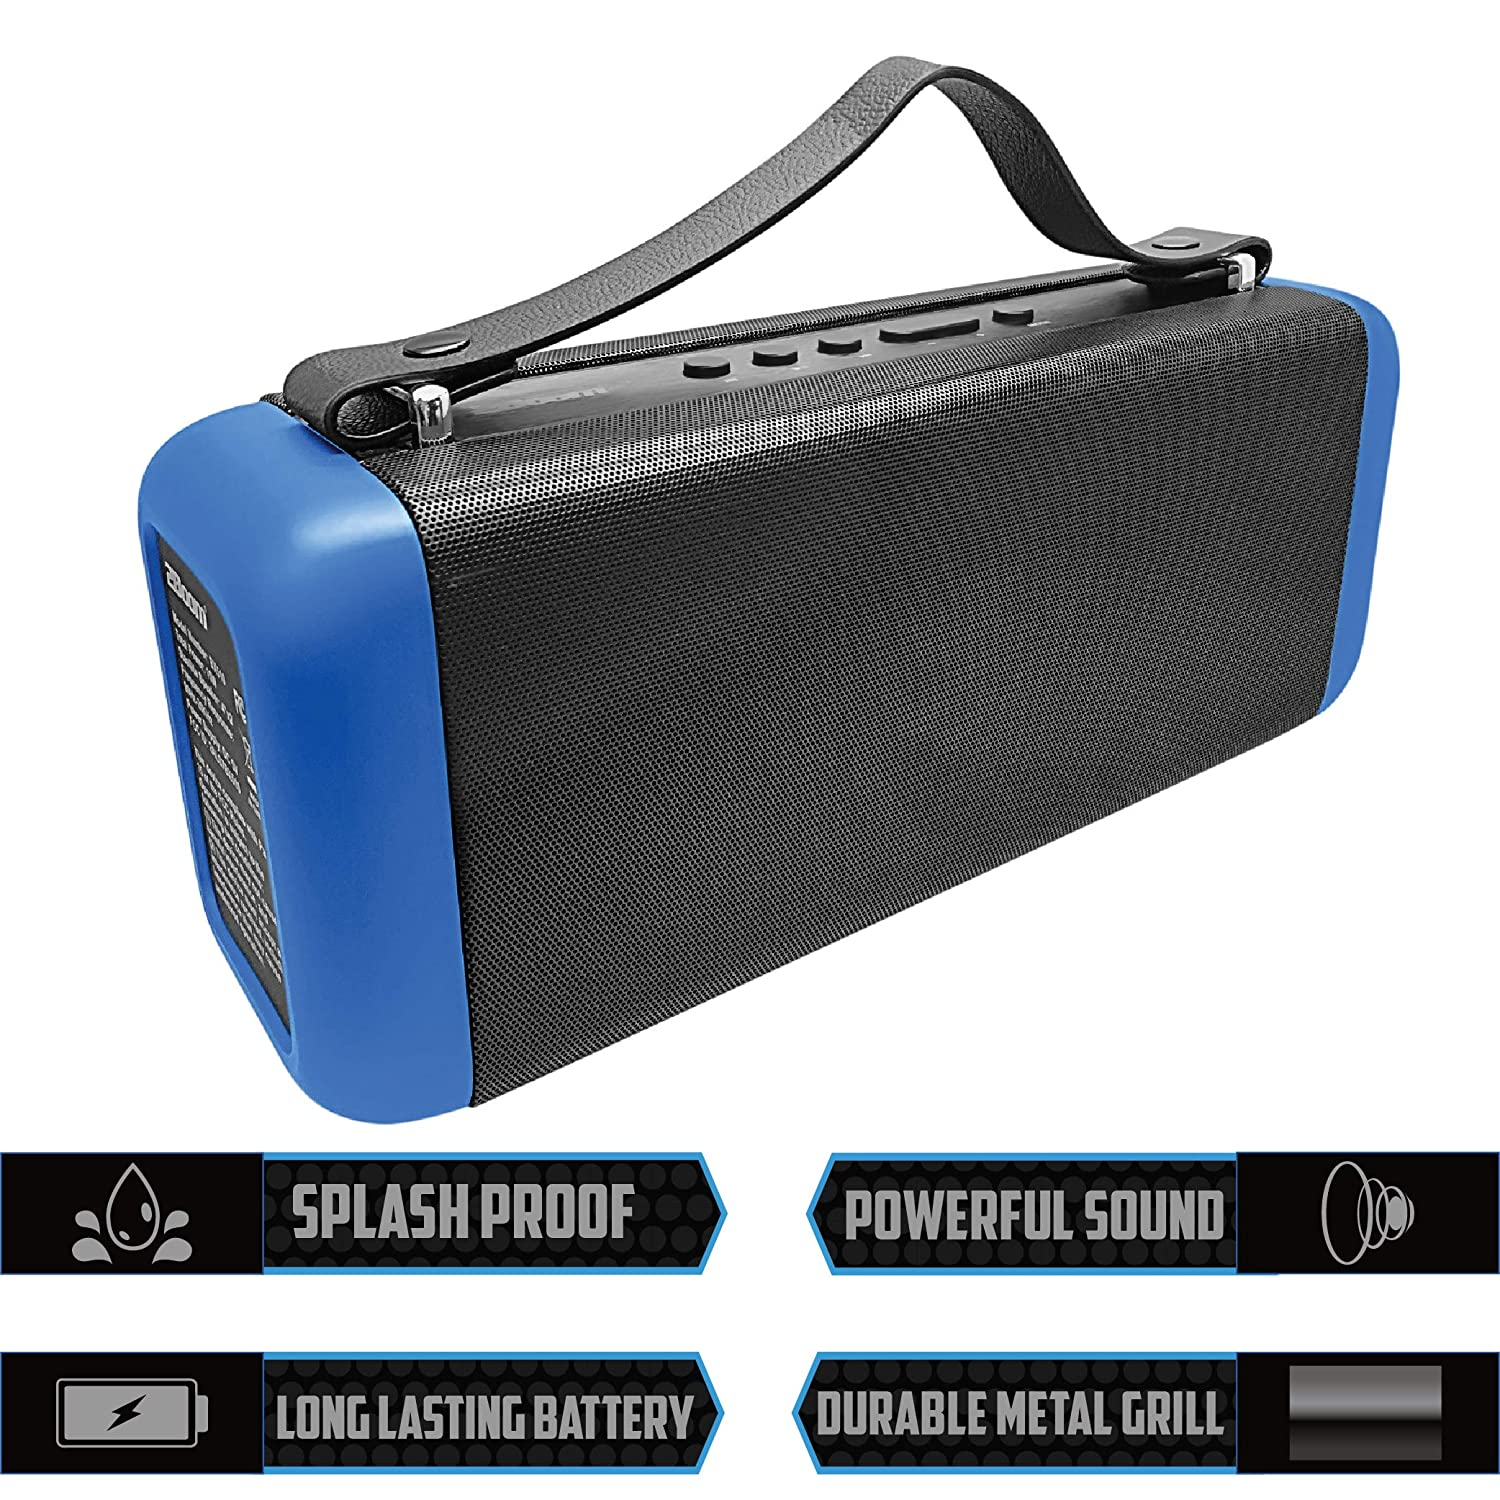 2BOOM Portable Bluetooth Speakers, Wireless Boombox Stereo, Portable  Indoor/Outdoor, FM Radio, 3-inch Dual Sub-Woofers, Rechargeable Battery,  Booming